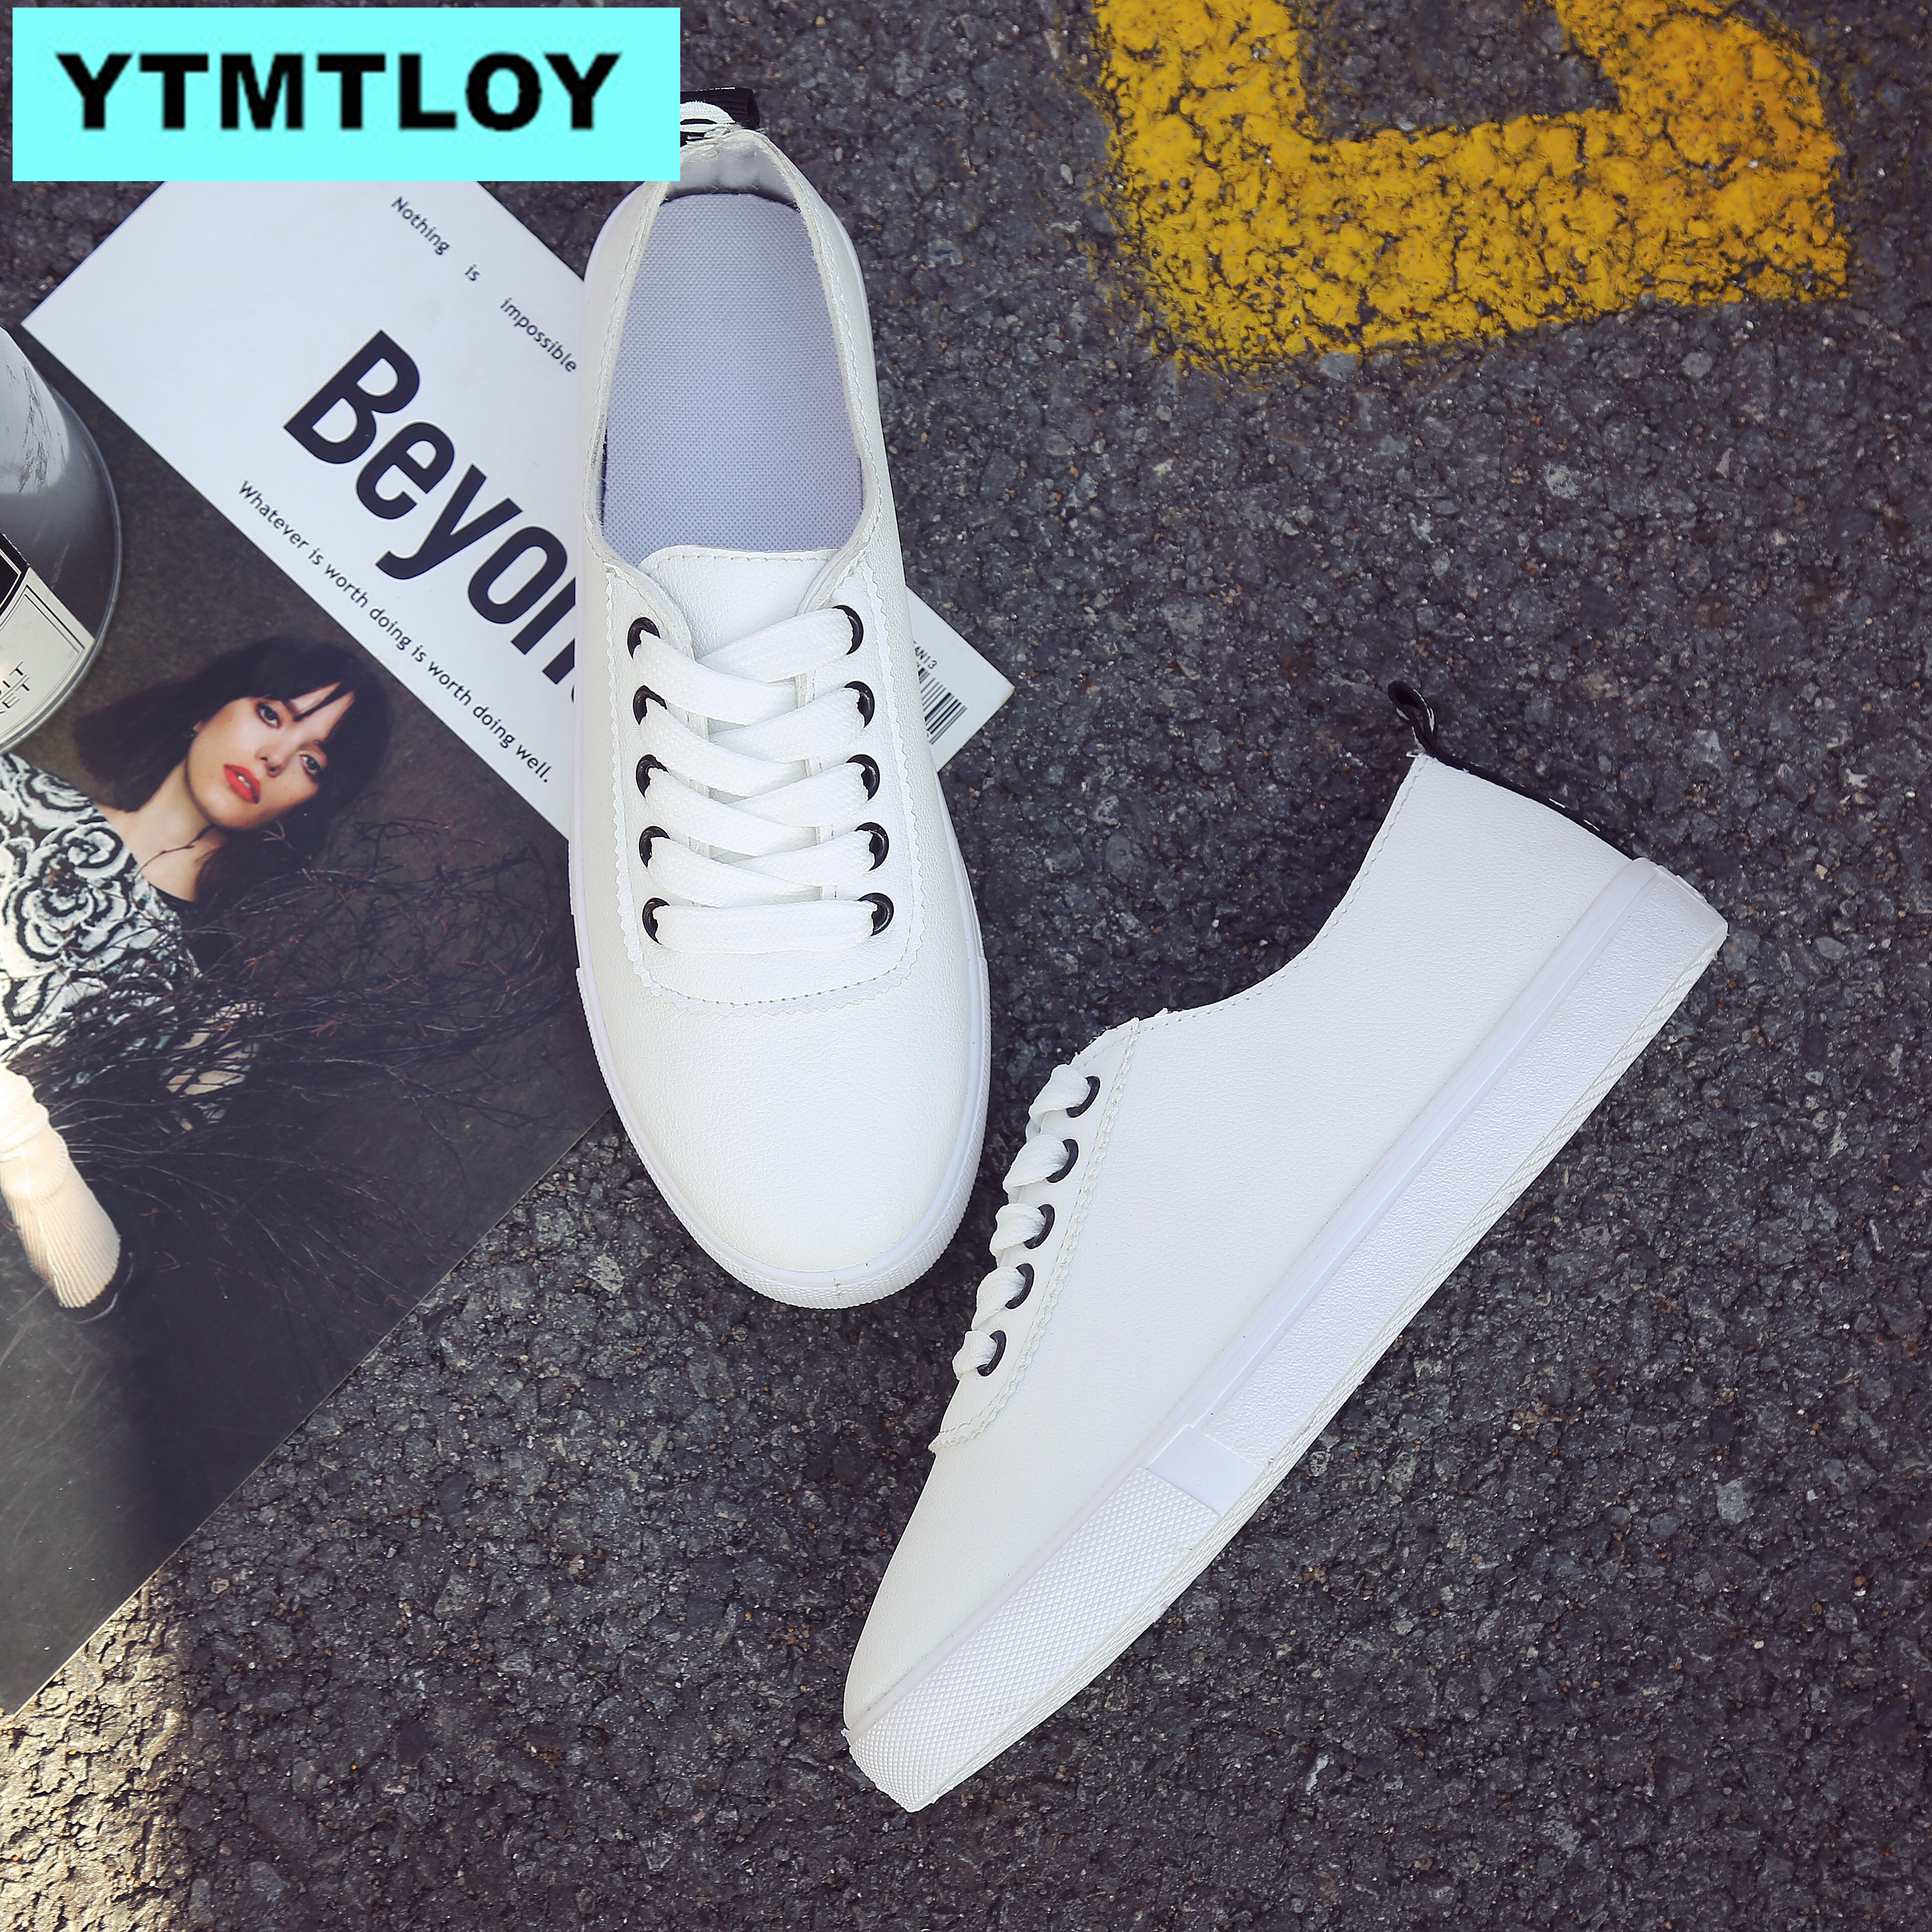 Korean Fashion Platform Sports Shoes New Autumn Women's Shoes Casual Shoes Wild Belt Flat With Women Casual Small White Shoes Ro